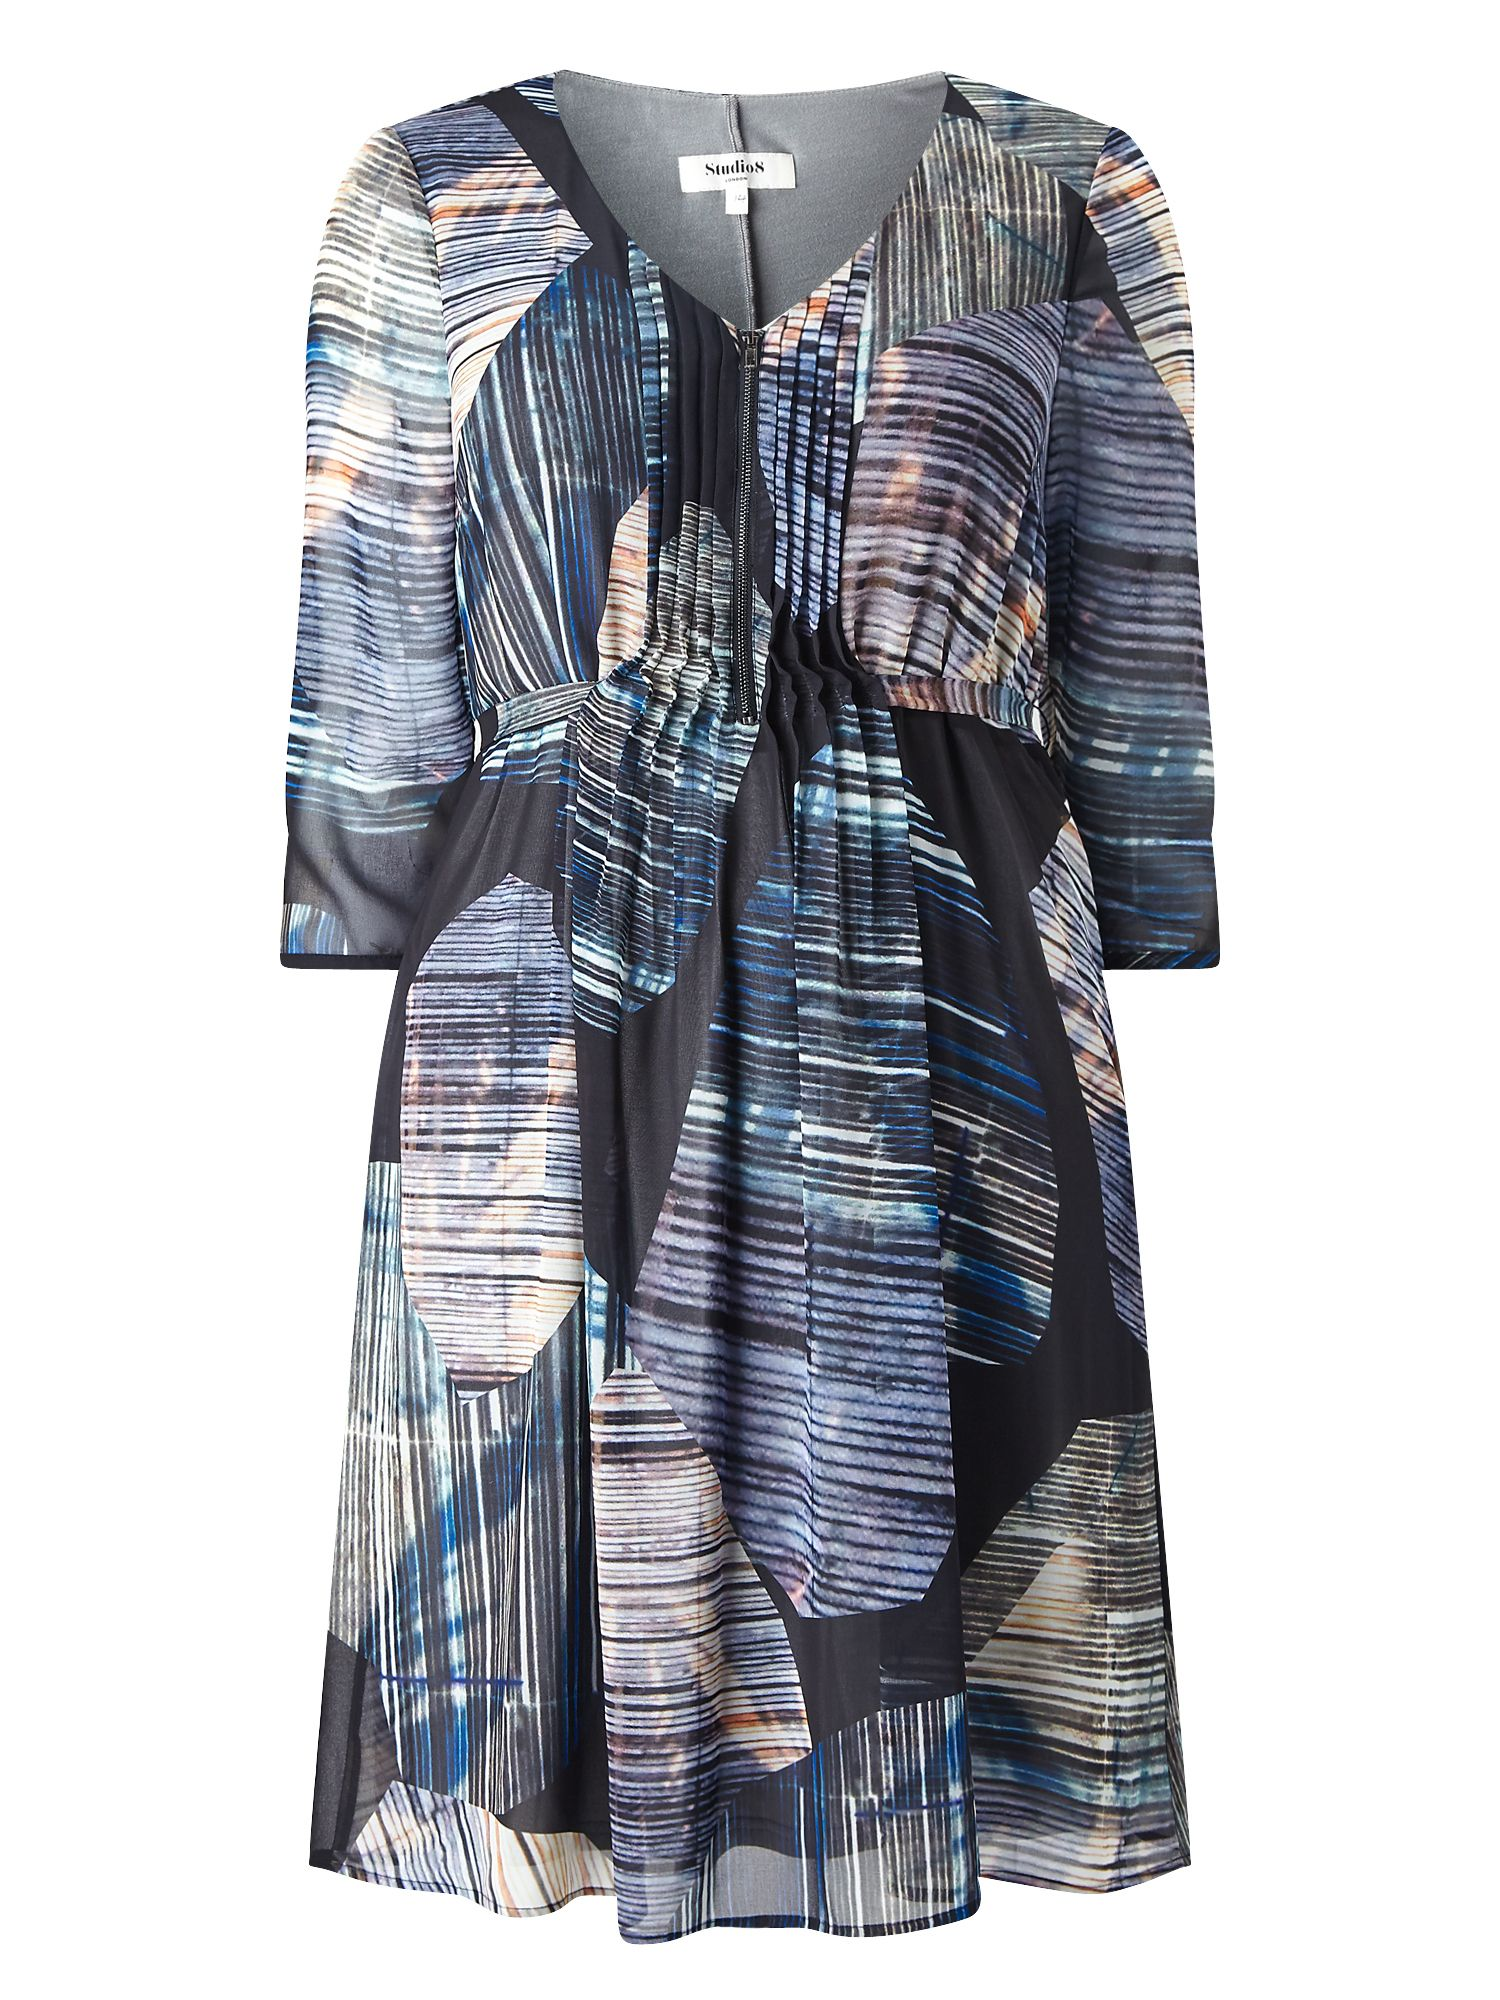 Studio 8 Marlena Dress, Multi-Coloured